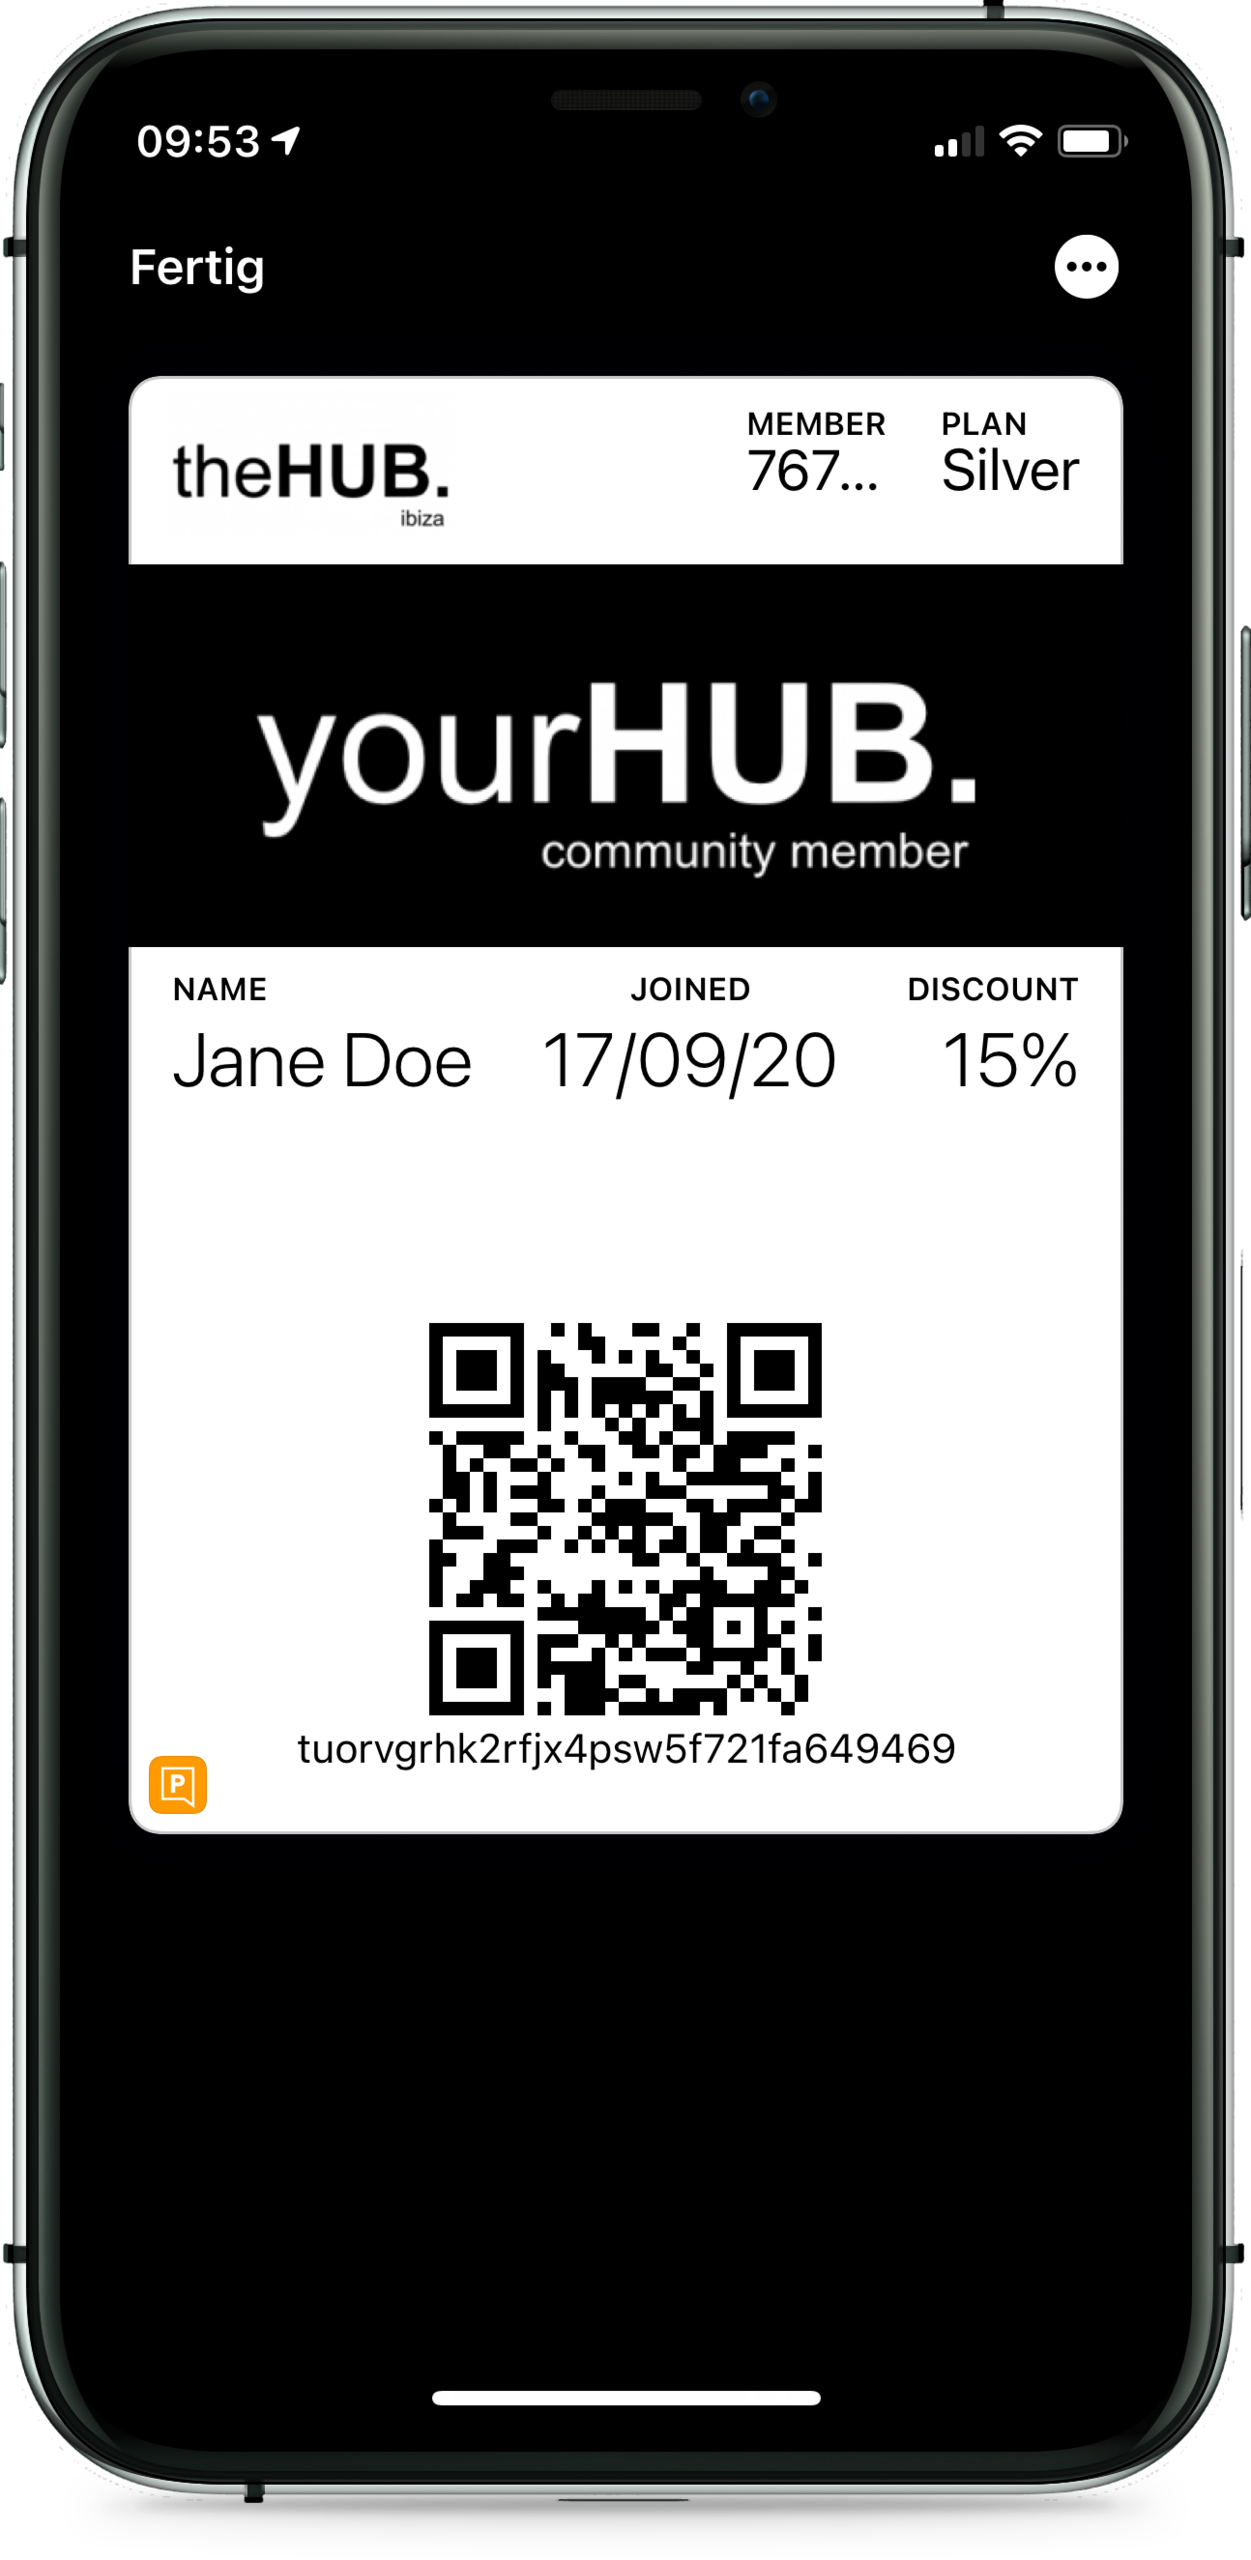 theHUB. membership Wallet card - Front